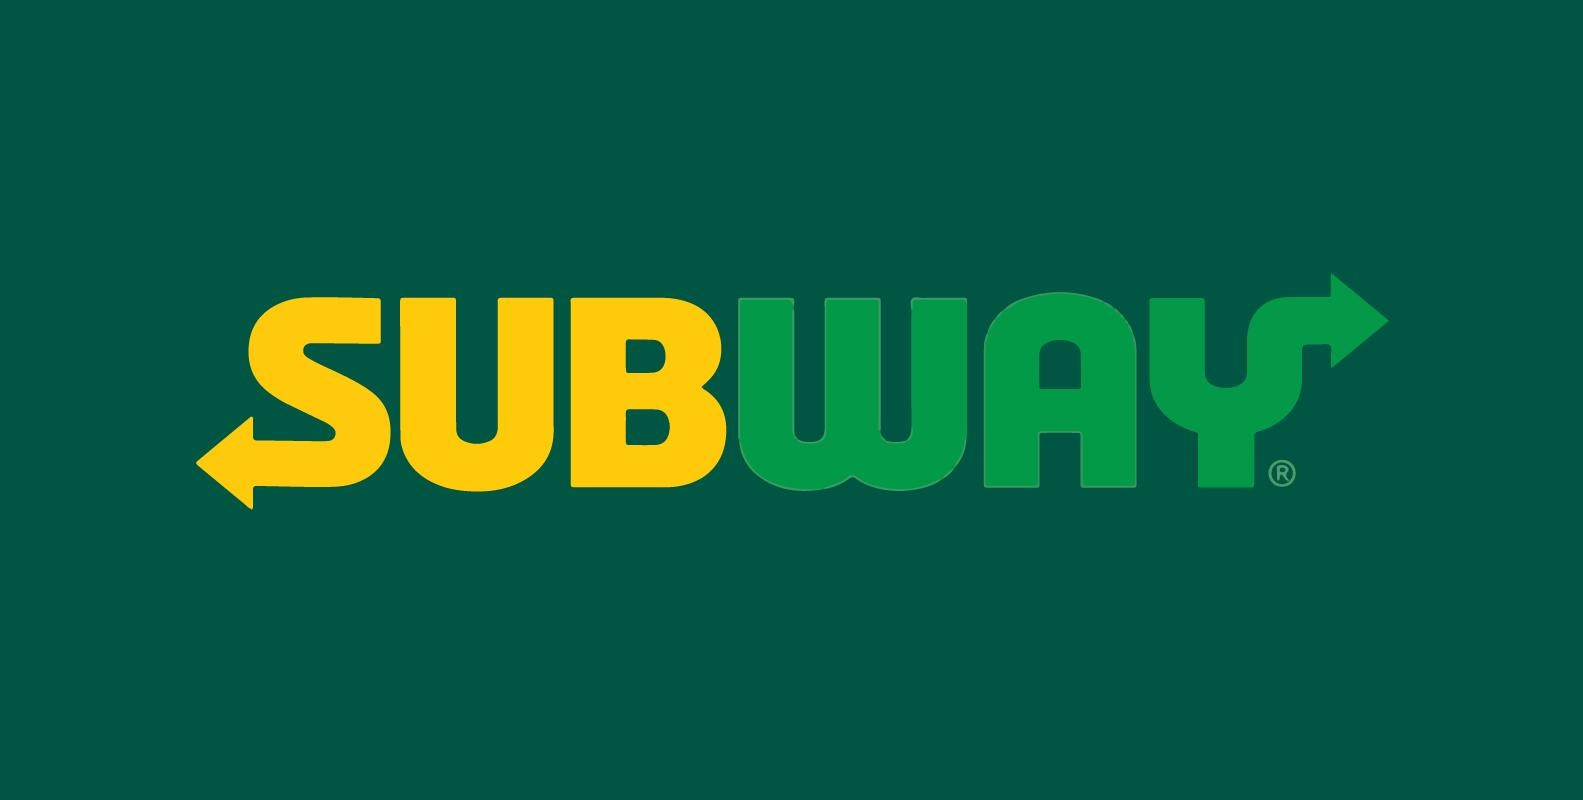 Subway Portside Hamilton, Brisbane! Motivated seller who just wants to retire! Development area!